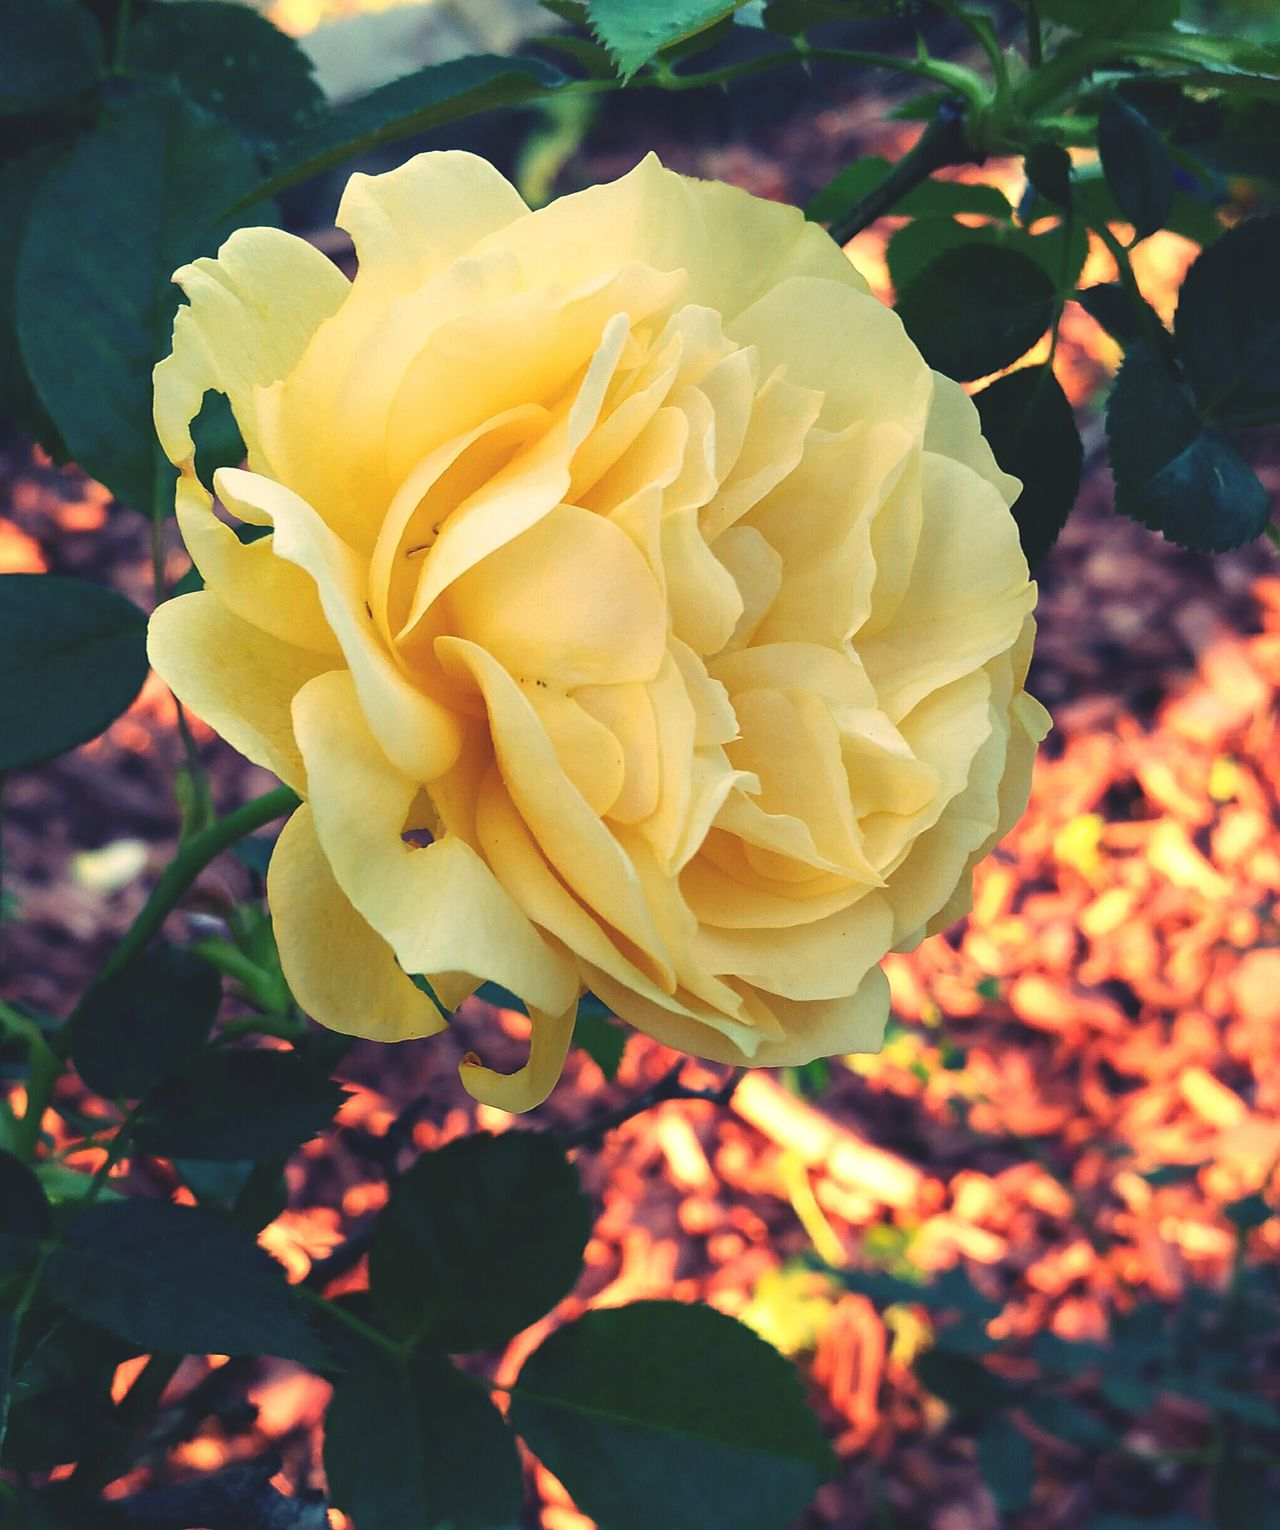 Yellow Rose of Texas Flower Nature Yellow Beauty In Nature Petal Close-up Plant Fragility Growth Outdoors Freshness Blooming Flower Head No People Day Eyemphotos Popular Photos Eye Em Nature Lover Roses Naturelovers Naturephotography In My Neighborhood Yellow Rose My Photography